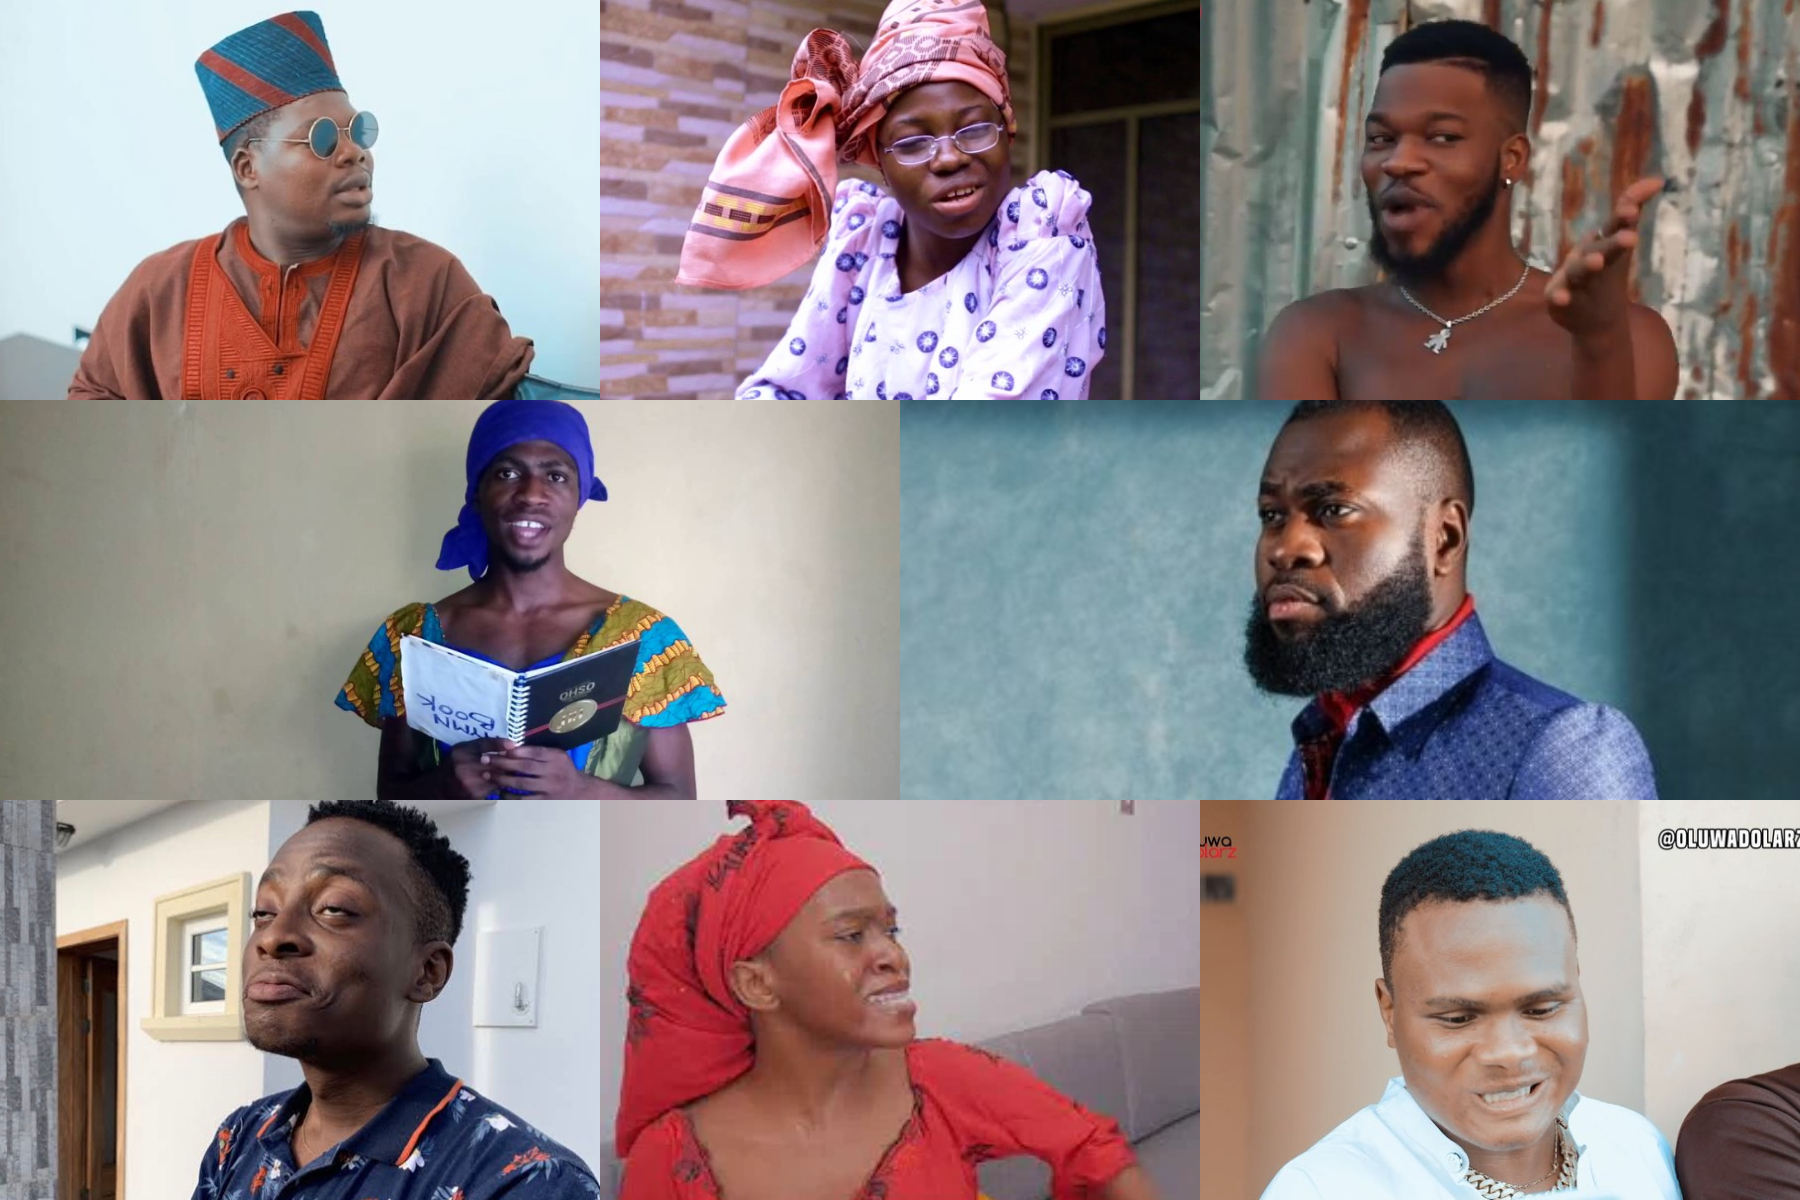 Who amongst these is most creative in skits making?